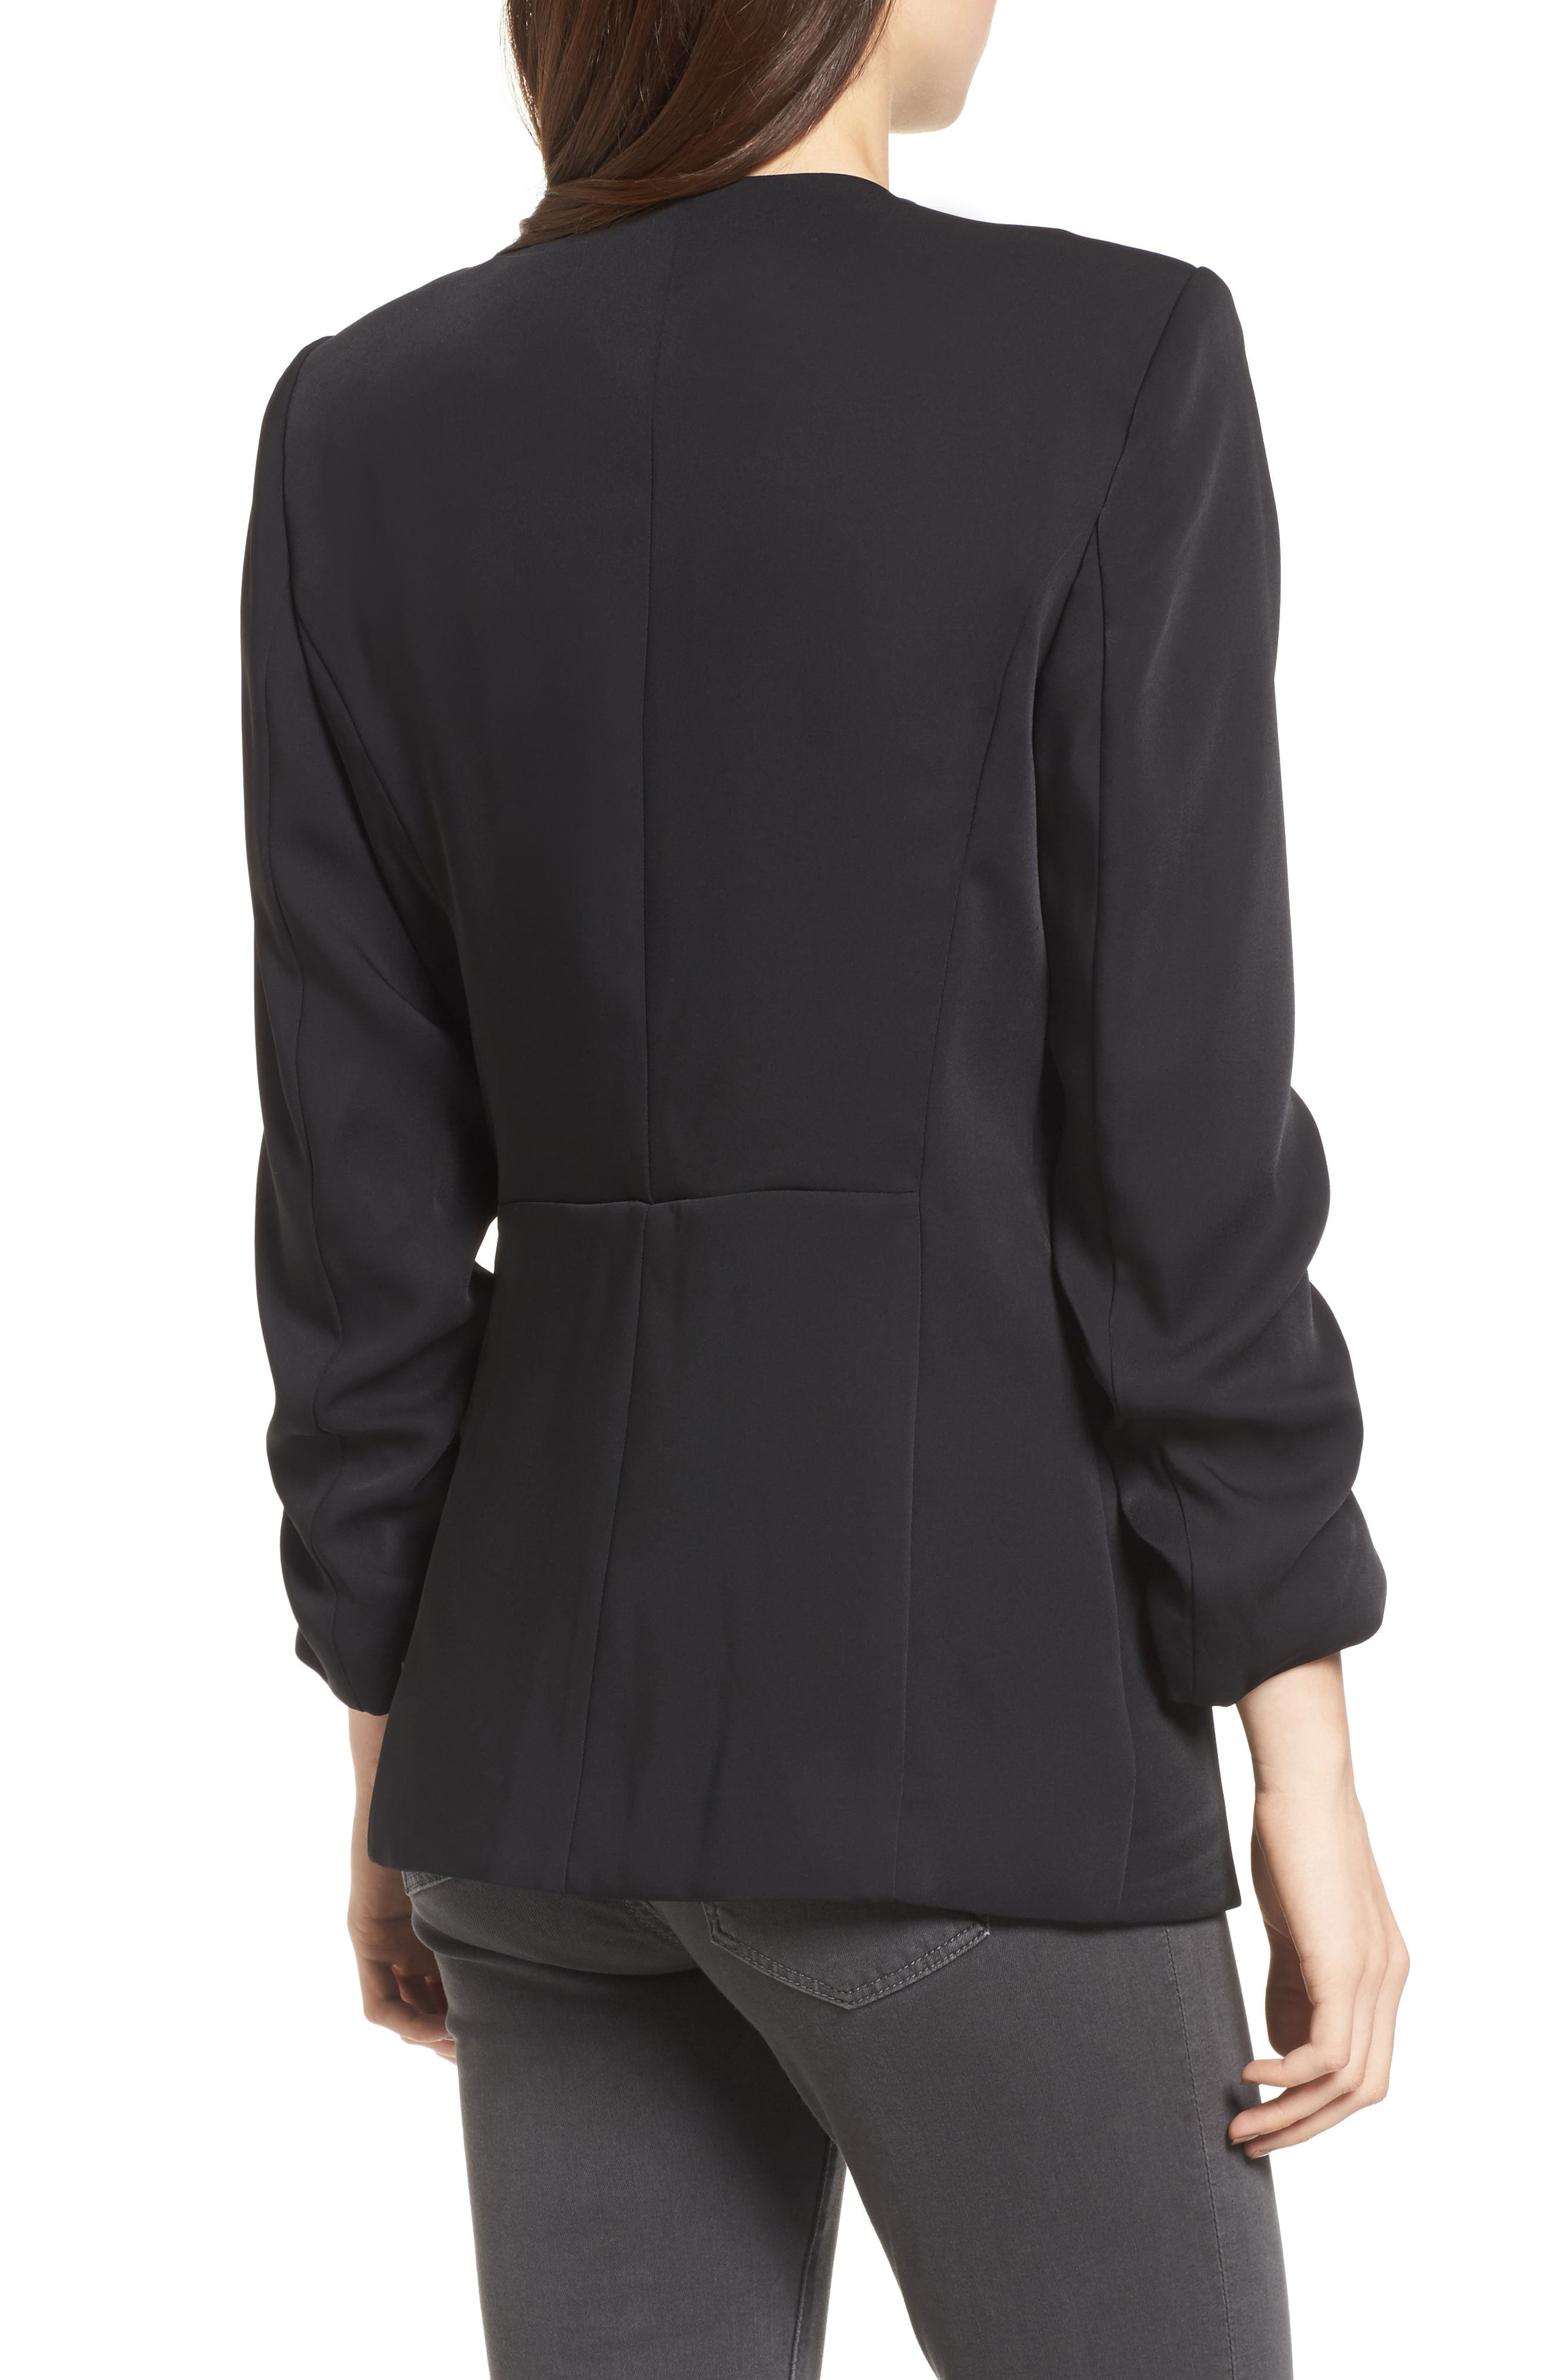 Ruched Sleeve Blazer,                             Alternate thumbnail 2, color,                             Black